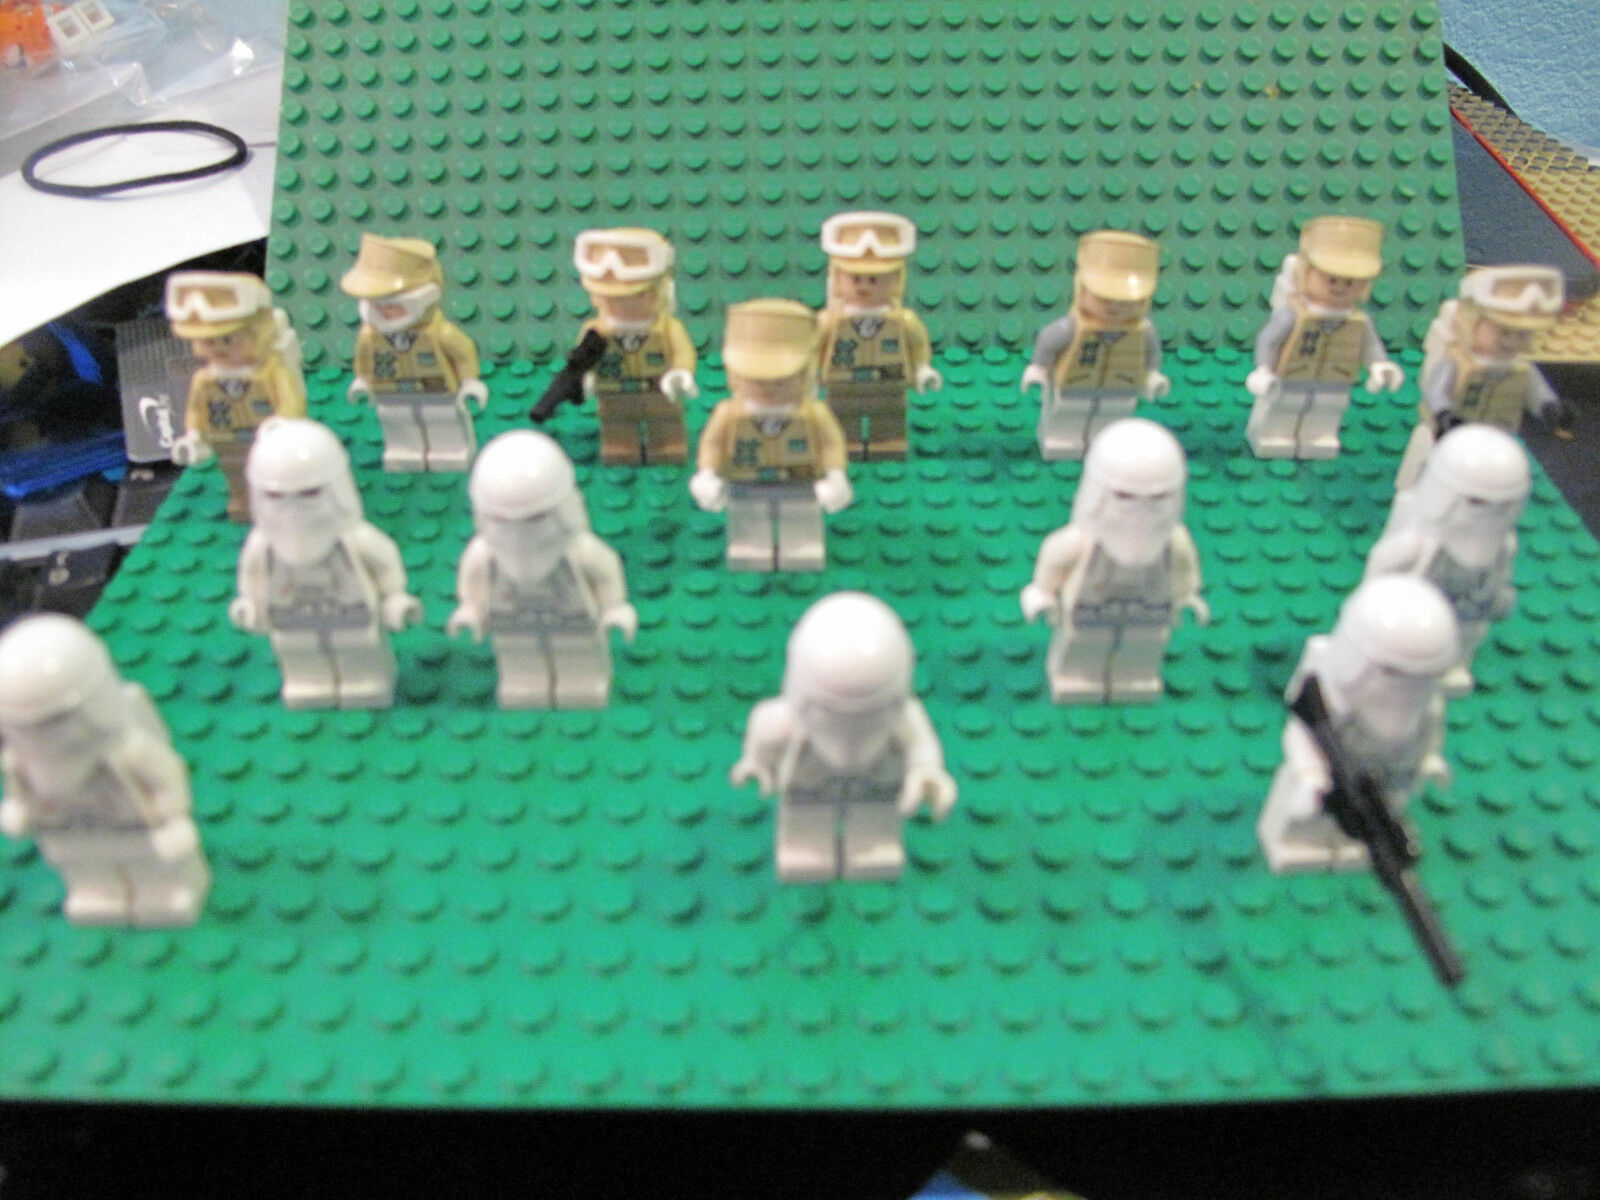 LEGO Star Wars Lot Set of 15 Hoth Rebel Soldiers Trooper & Imperial snow trooper